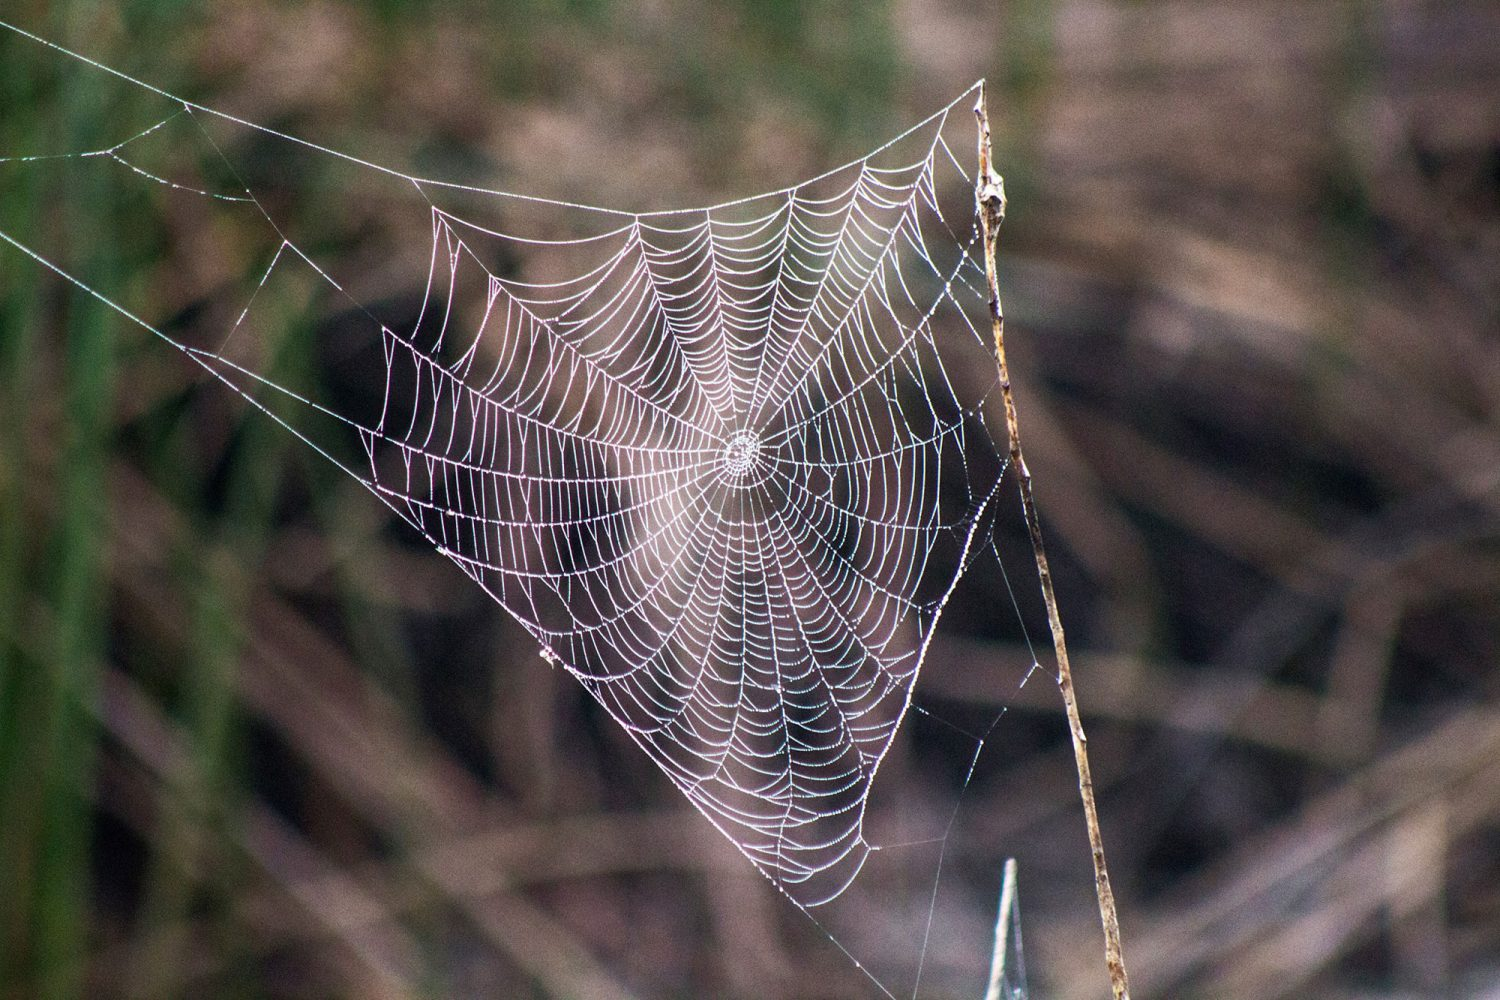 Spider web in the Cosumnes River Preserve